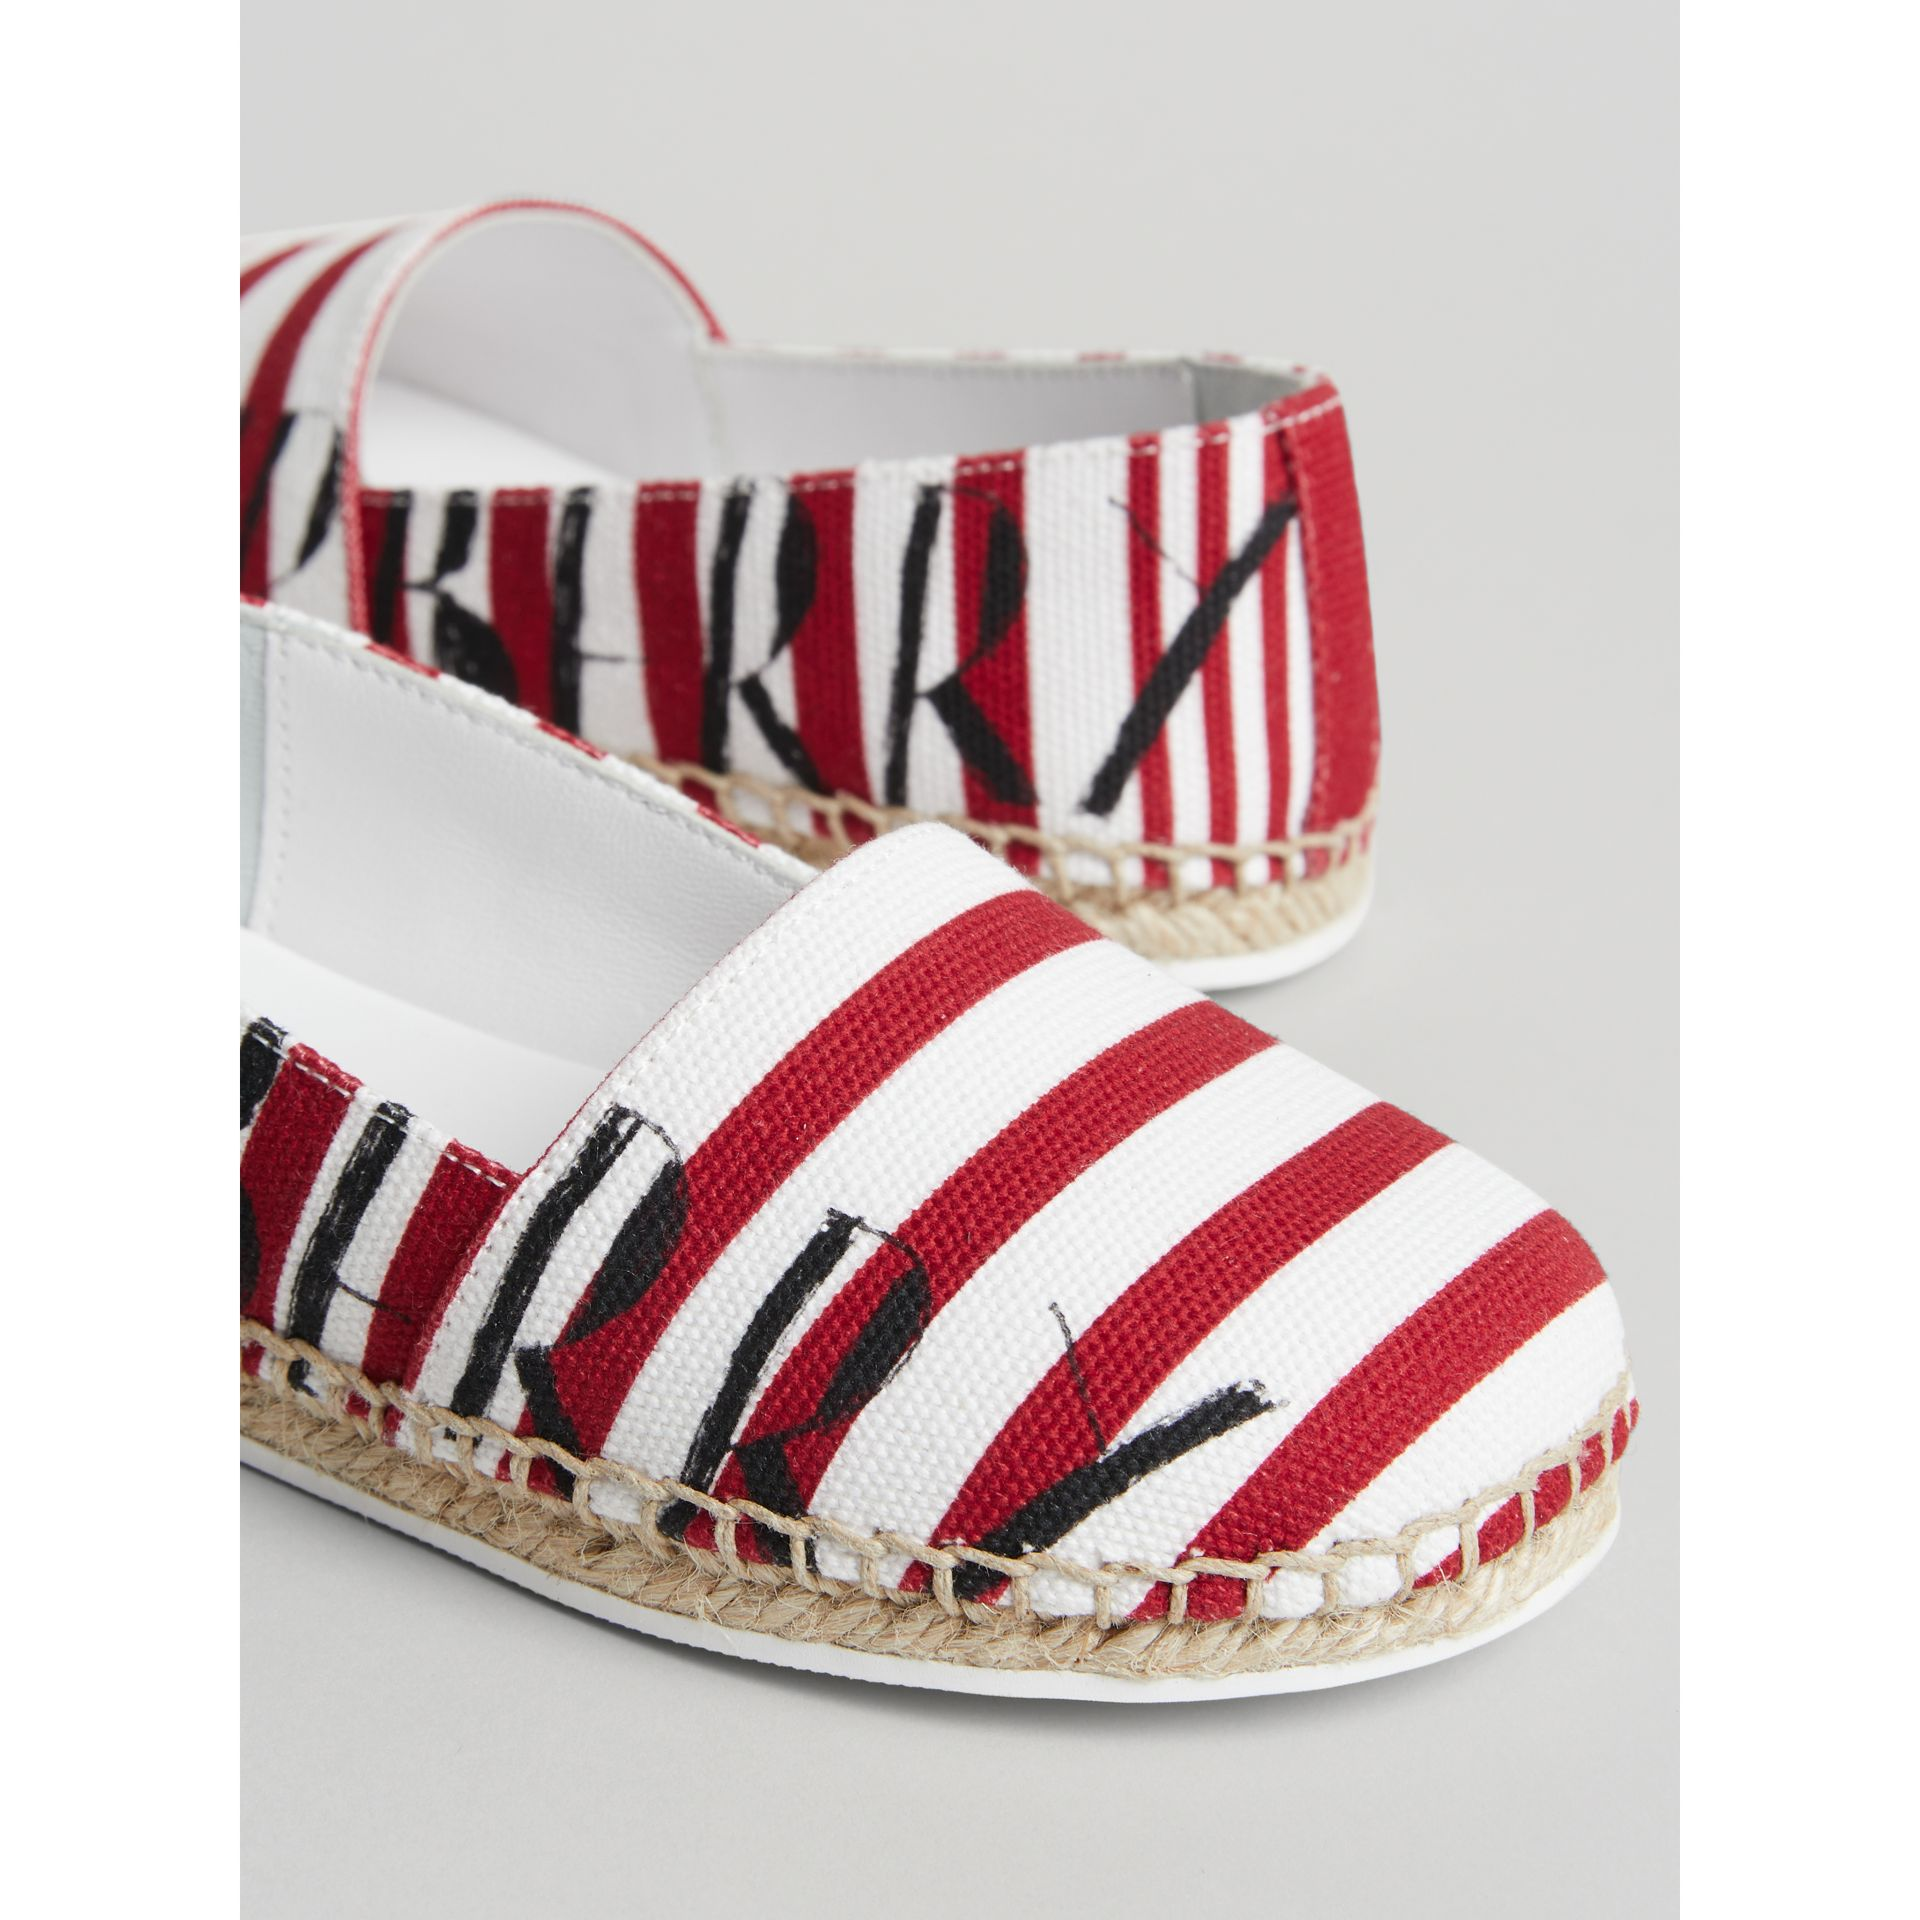 SW1 Print Striped Cotton Espadrilles in Bright Red - Children | Burberry - gallery image 1